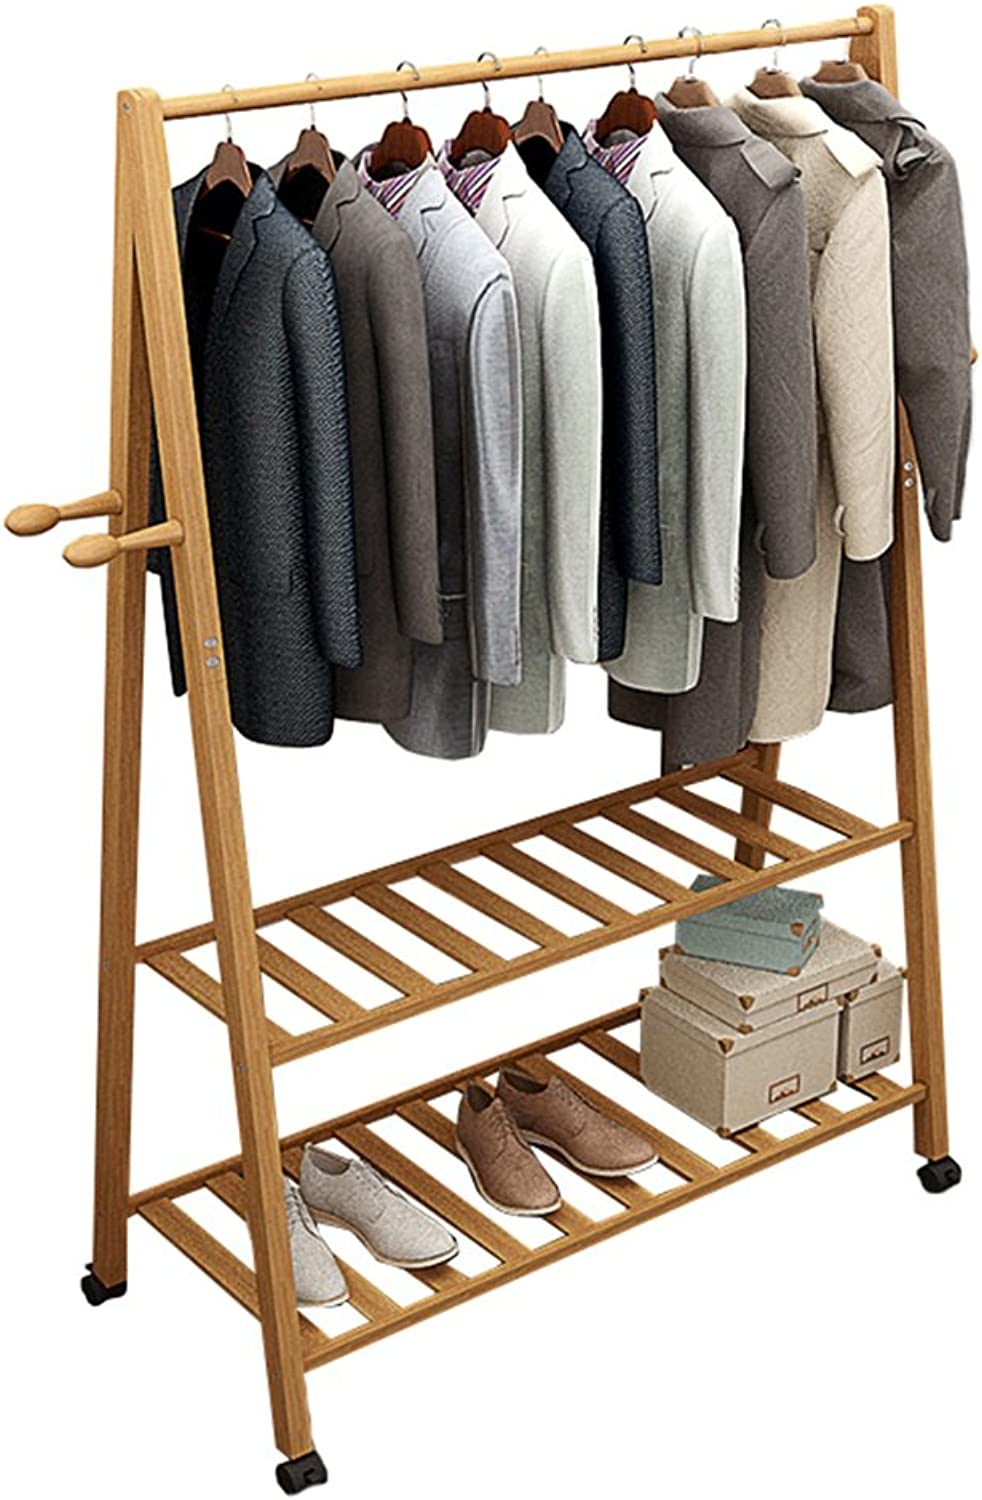 Multifuctional Bamboo Coat Rack with Caster Wheels 4 Coat Hooks 2-Tier shoes Clothes Storage Shelves Free Standing Hanging Rail,L60 70 80D45H165cm,Wood color (Size   60  45  165cm)